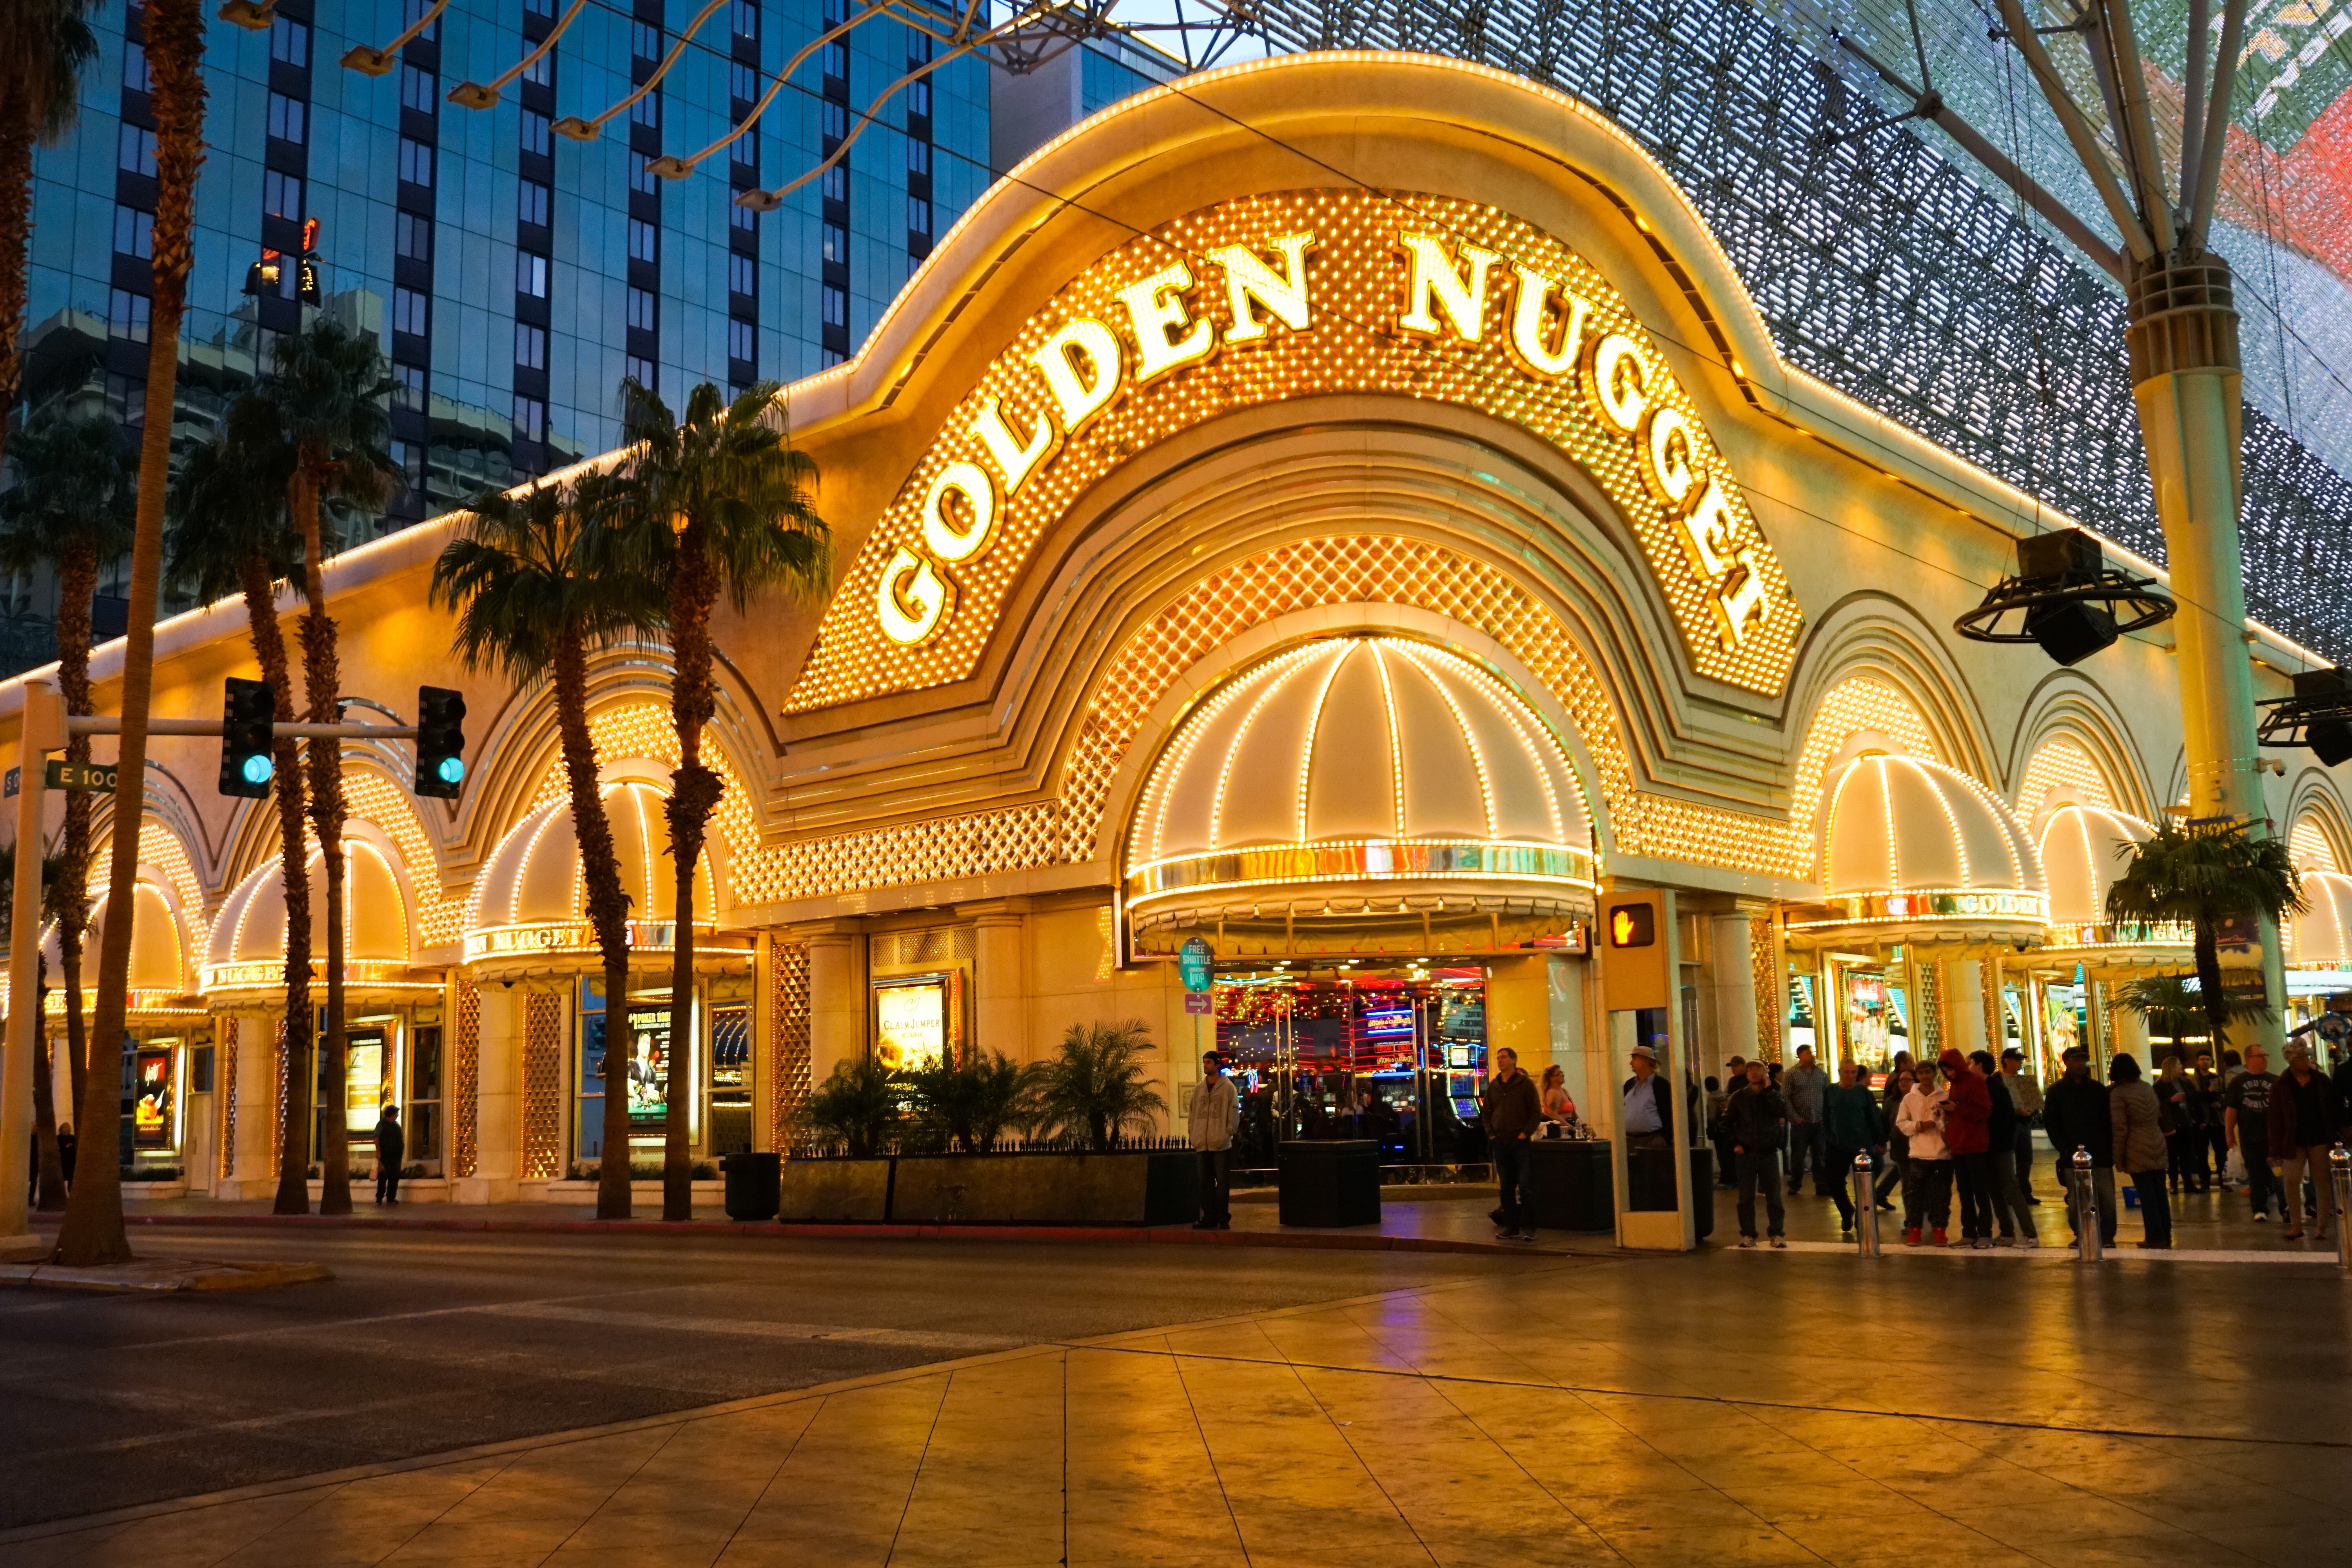 Golden Nugget Casino Downtown Las Vegas Nevada It S Not About The Miles